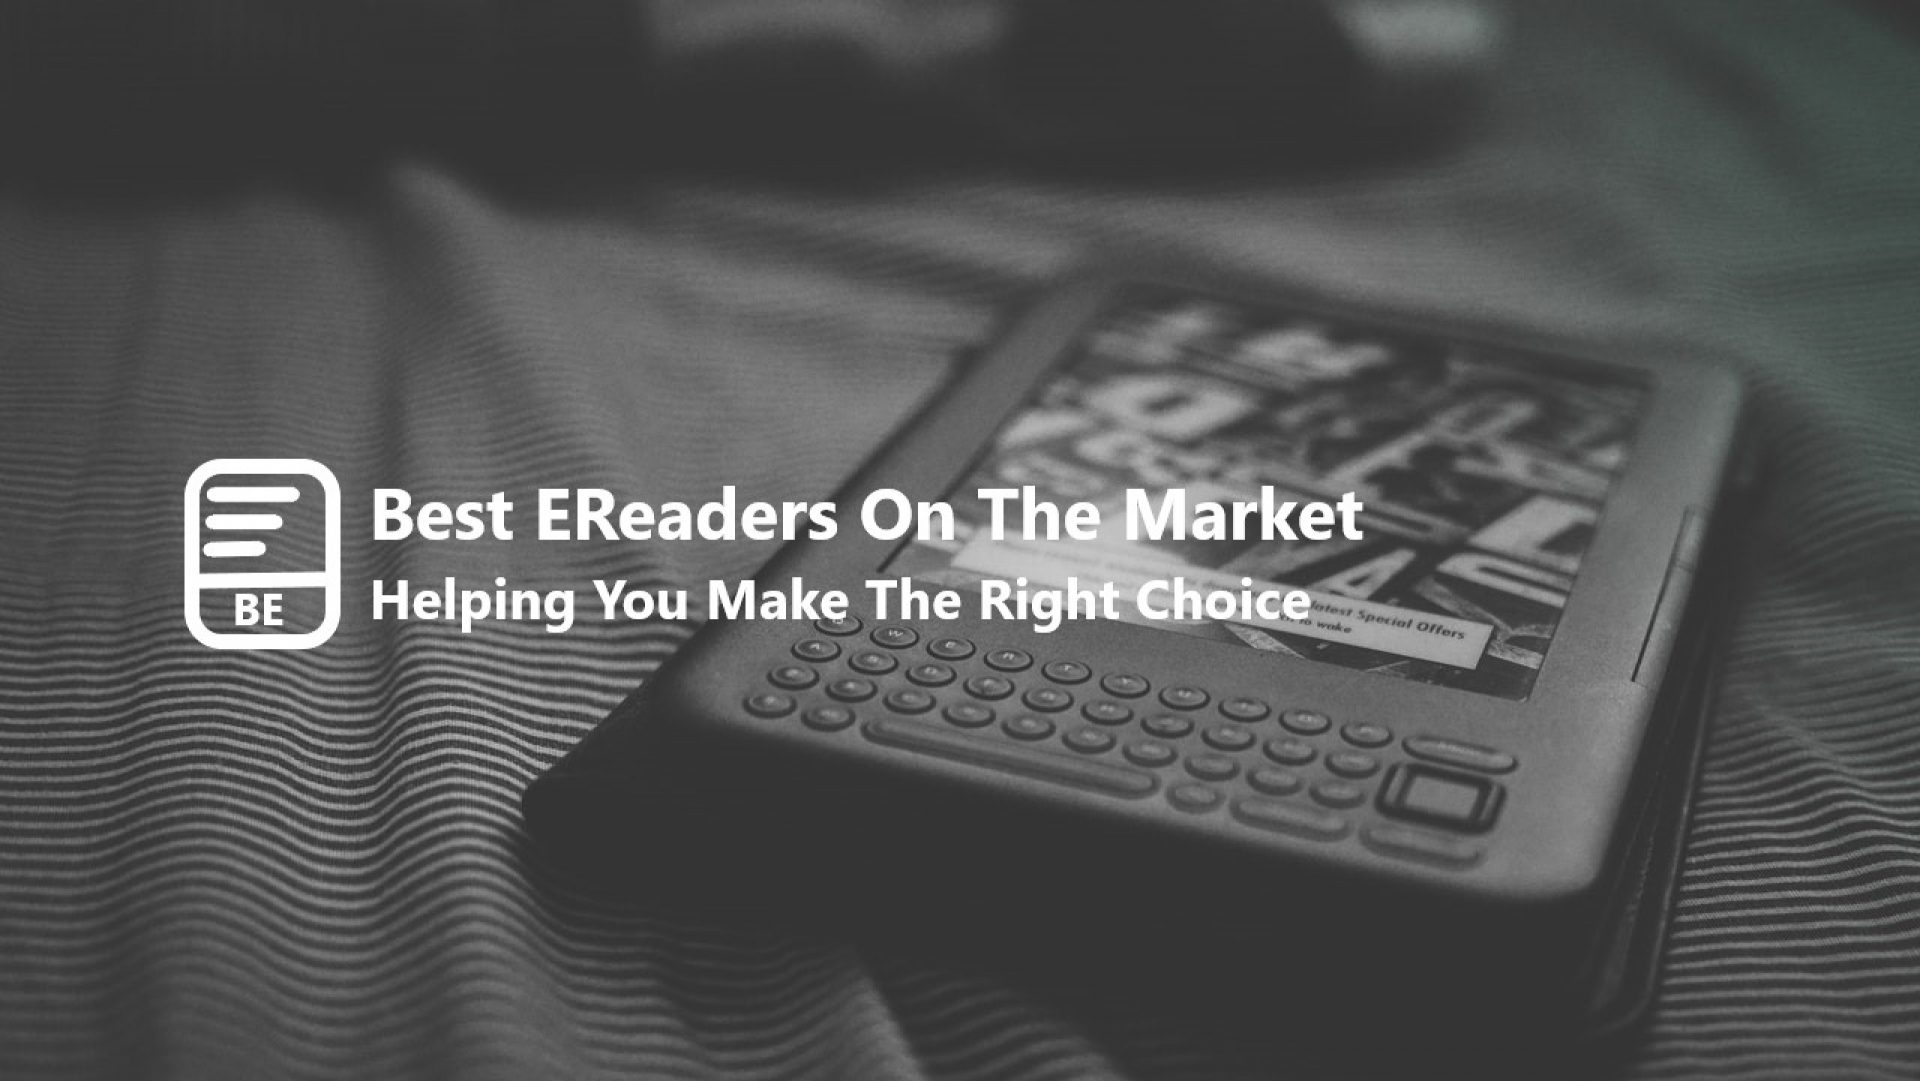 Best Ereaders On The Market